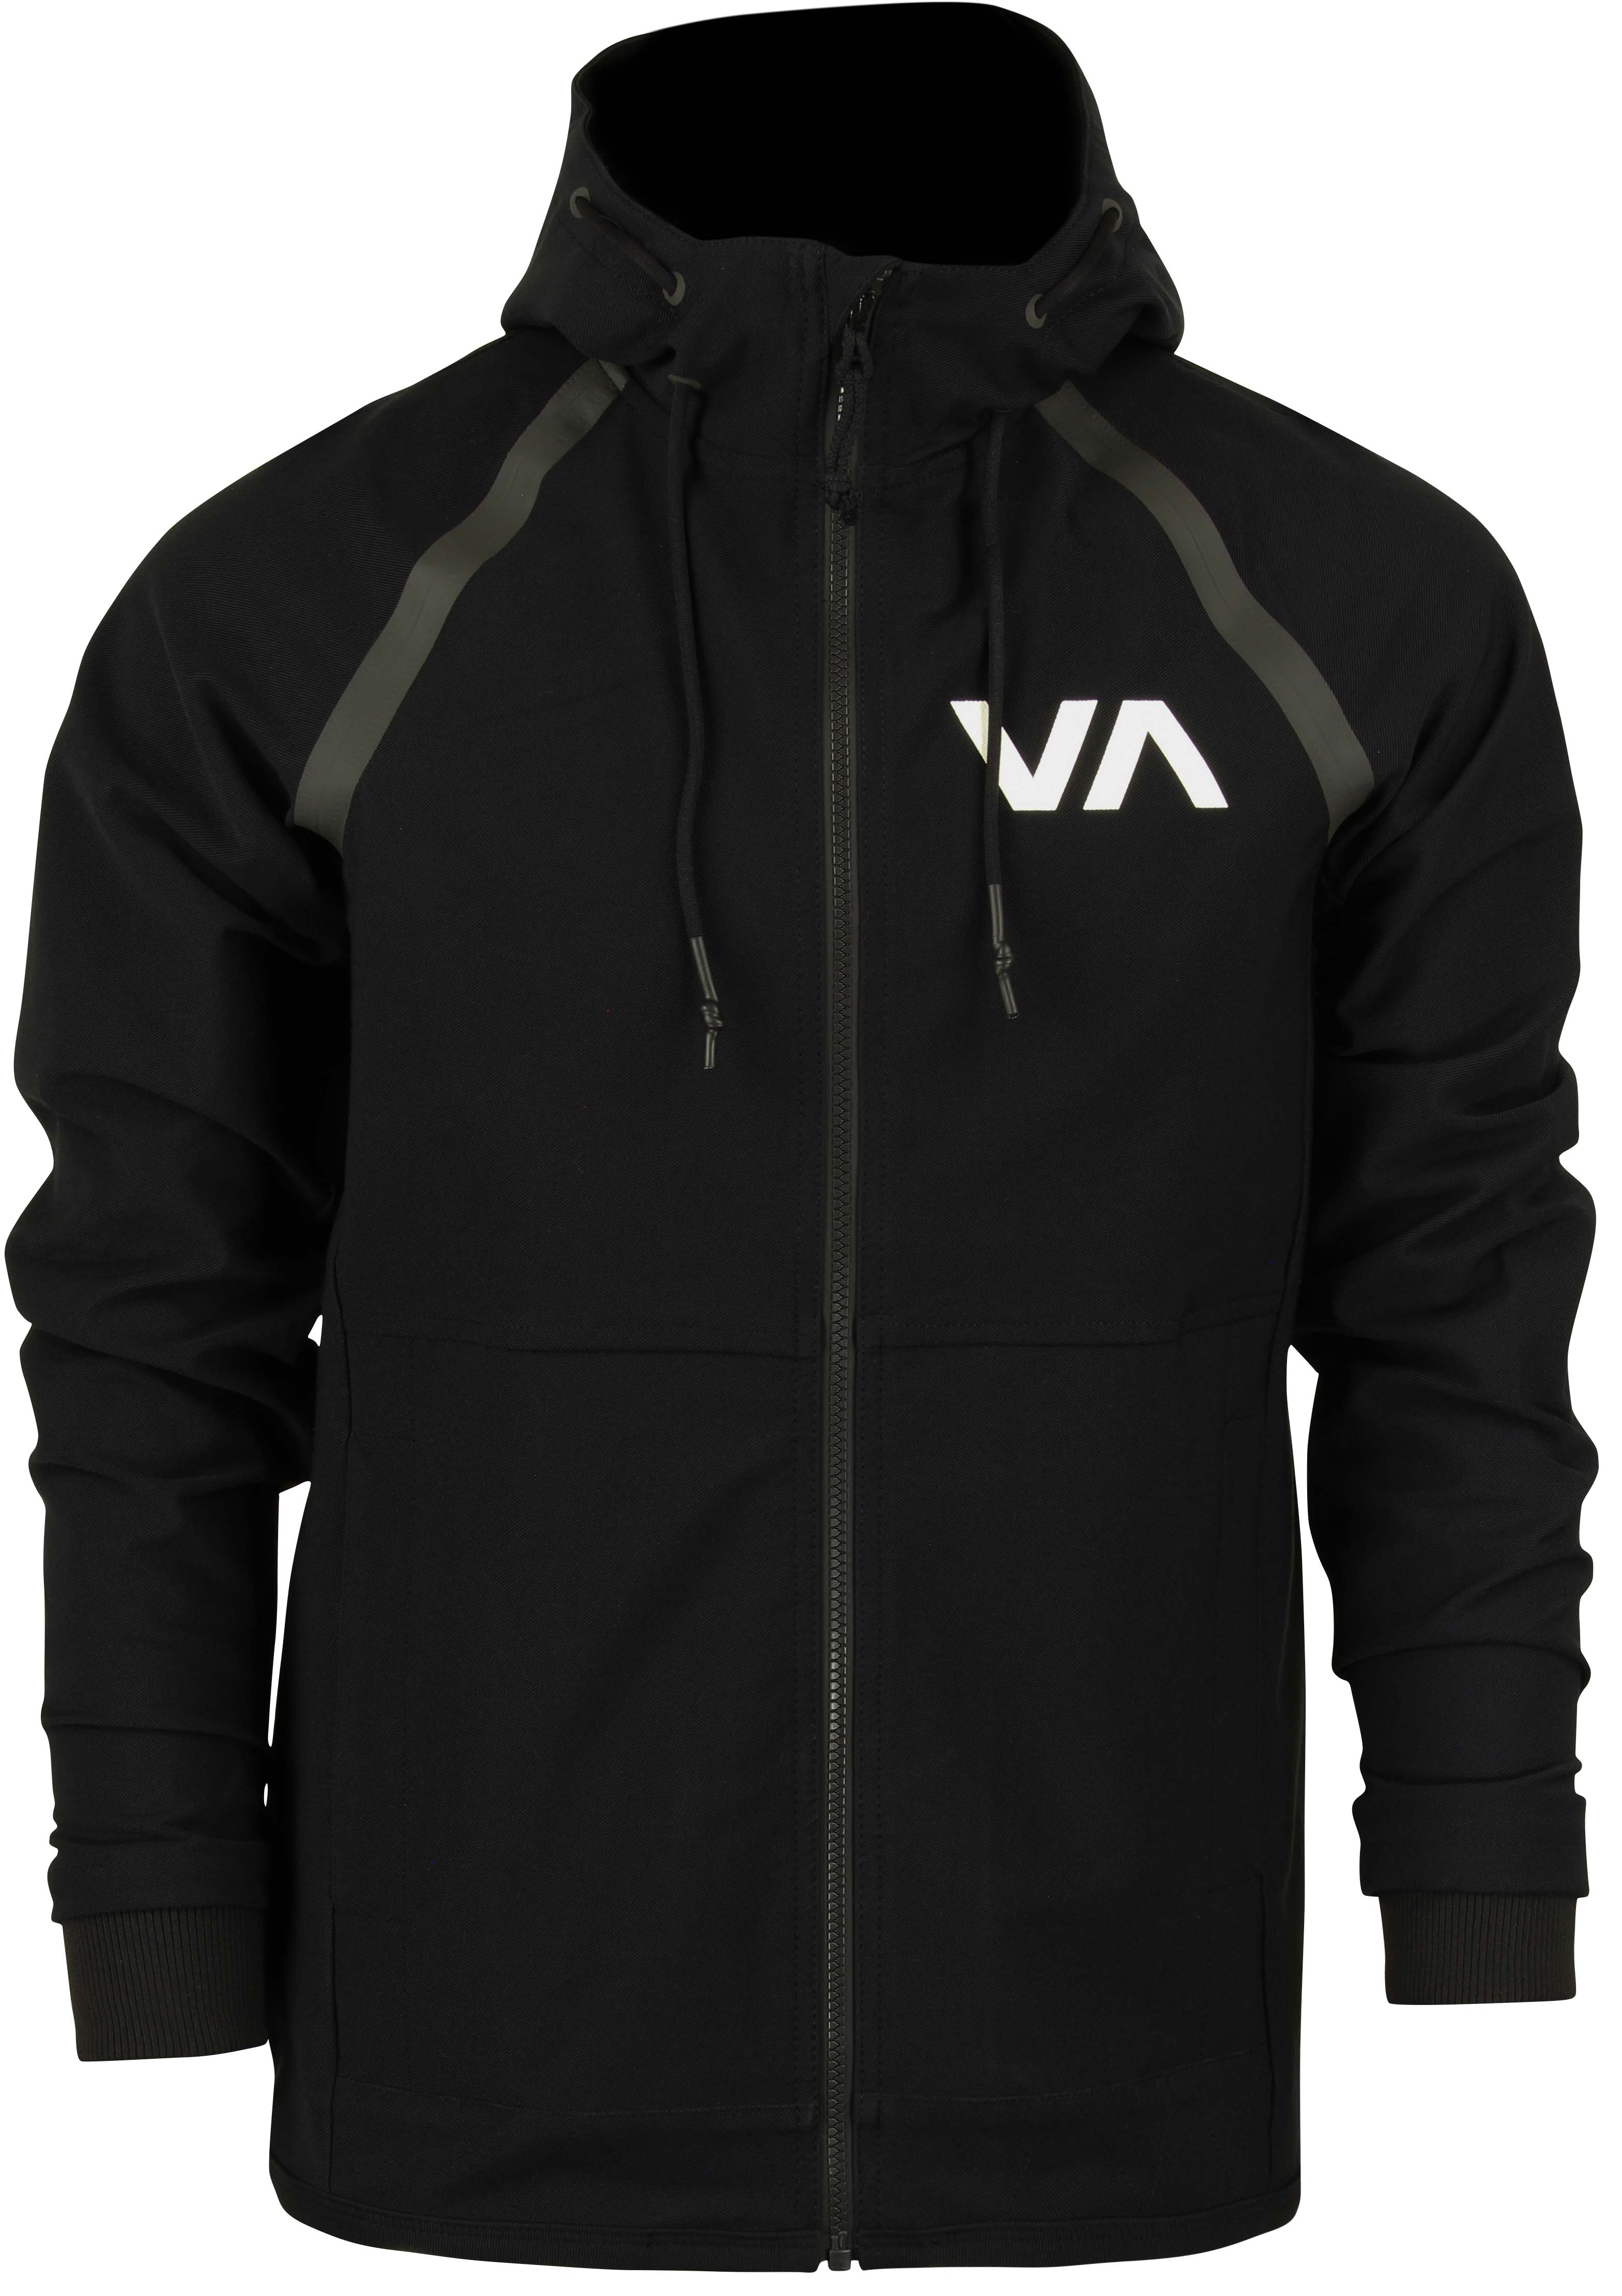 93d634866 RVCA Mens VA Sport Grappler Jacket - Black/Gray | eBay